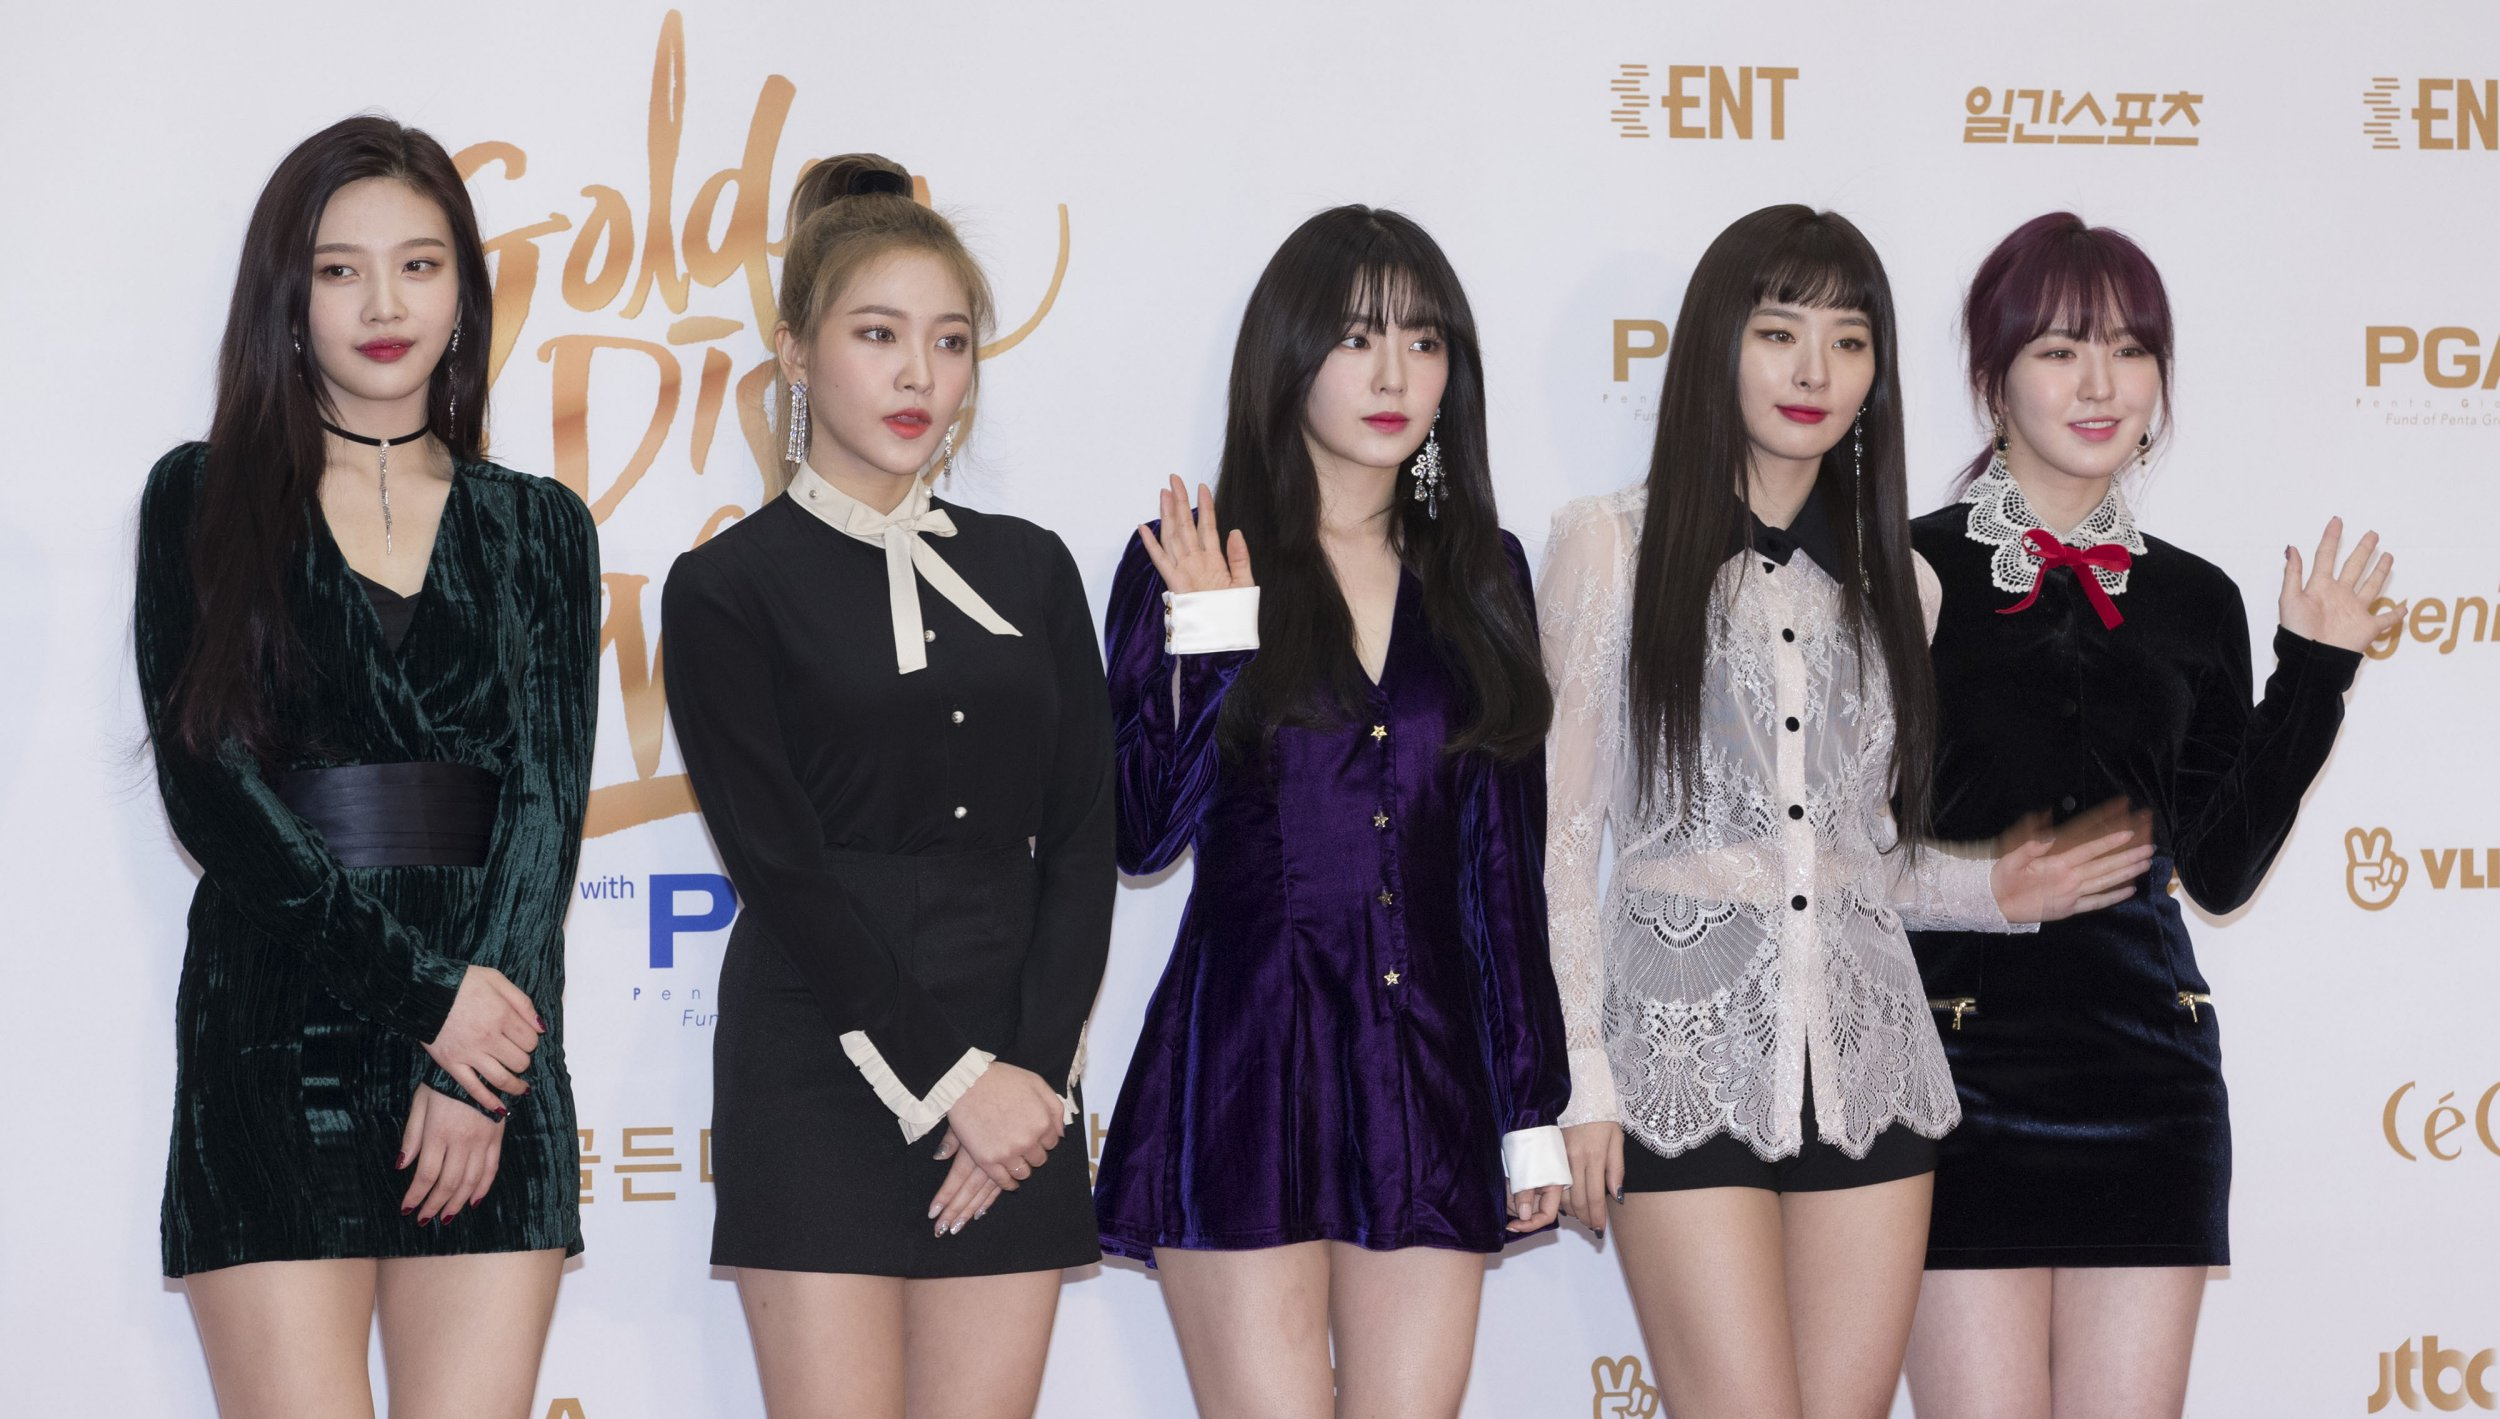 10 January 2018 - Goyang, South Korea : South Korean K-Pop girl group Red Velvet, attend a photo call for the 32nd Golden Disk Award at KINTEX in Goyang, South Korea on January 10, 2018. Photo Credit: Lee Young-ho